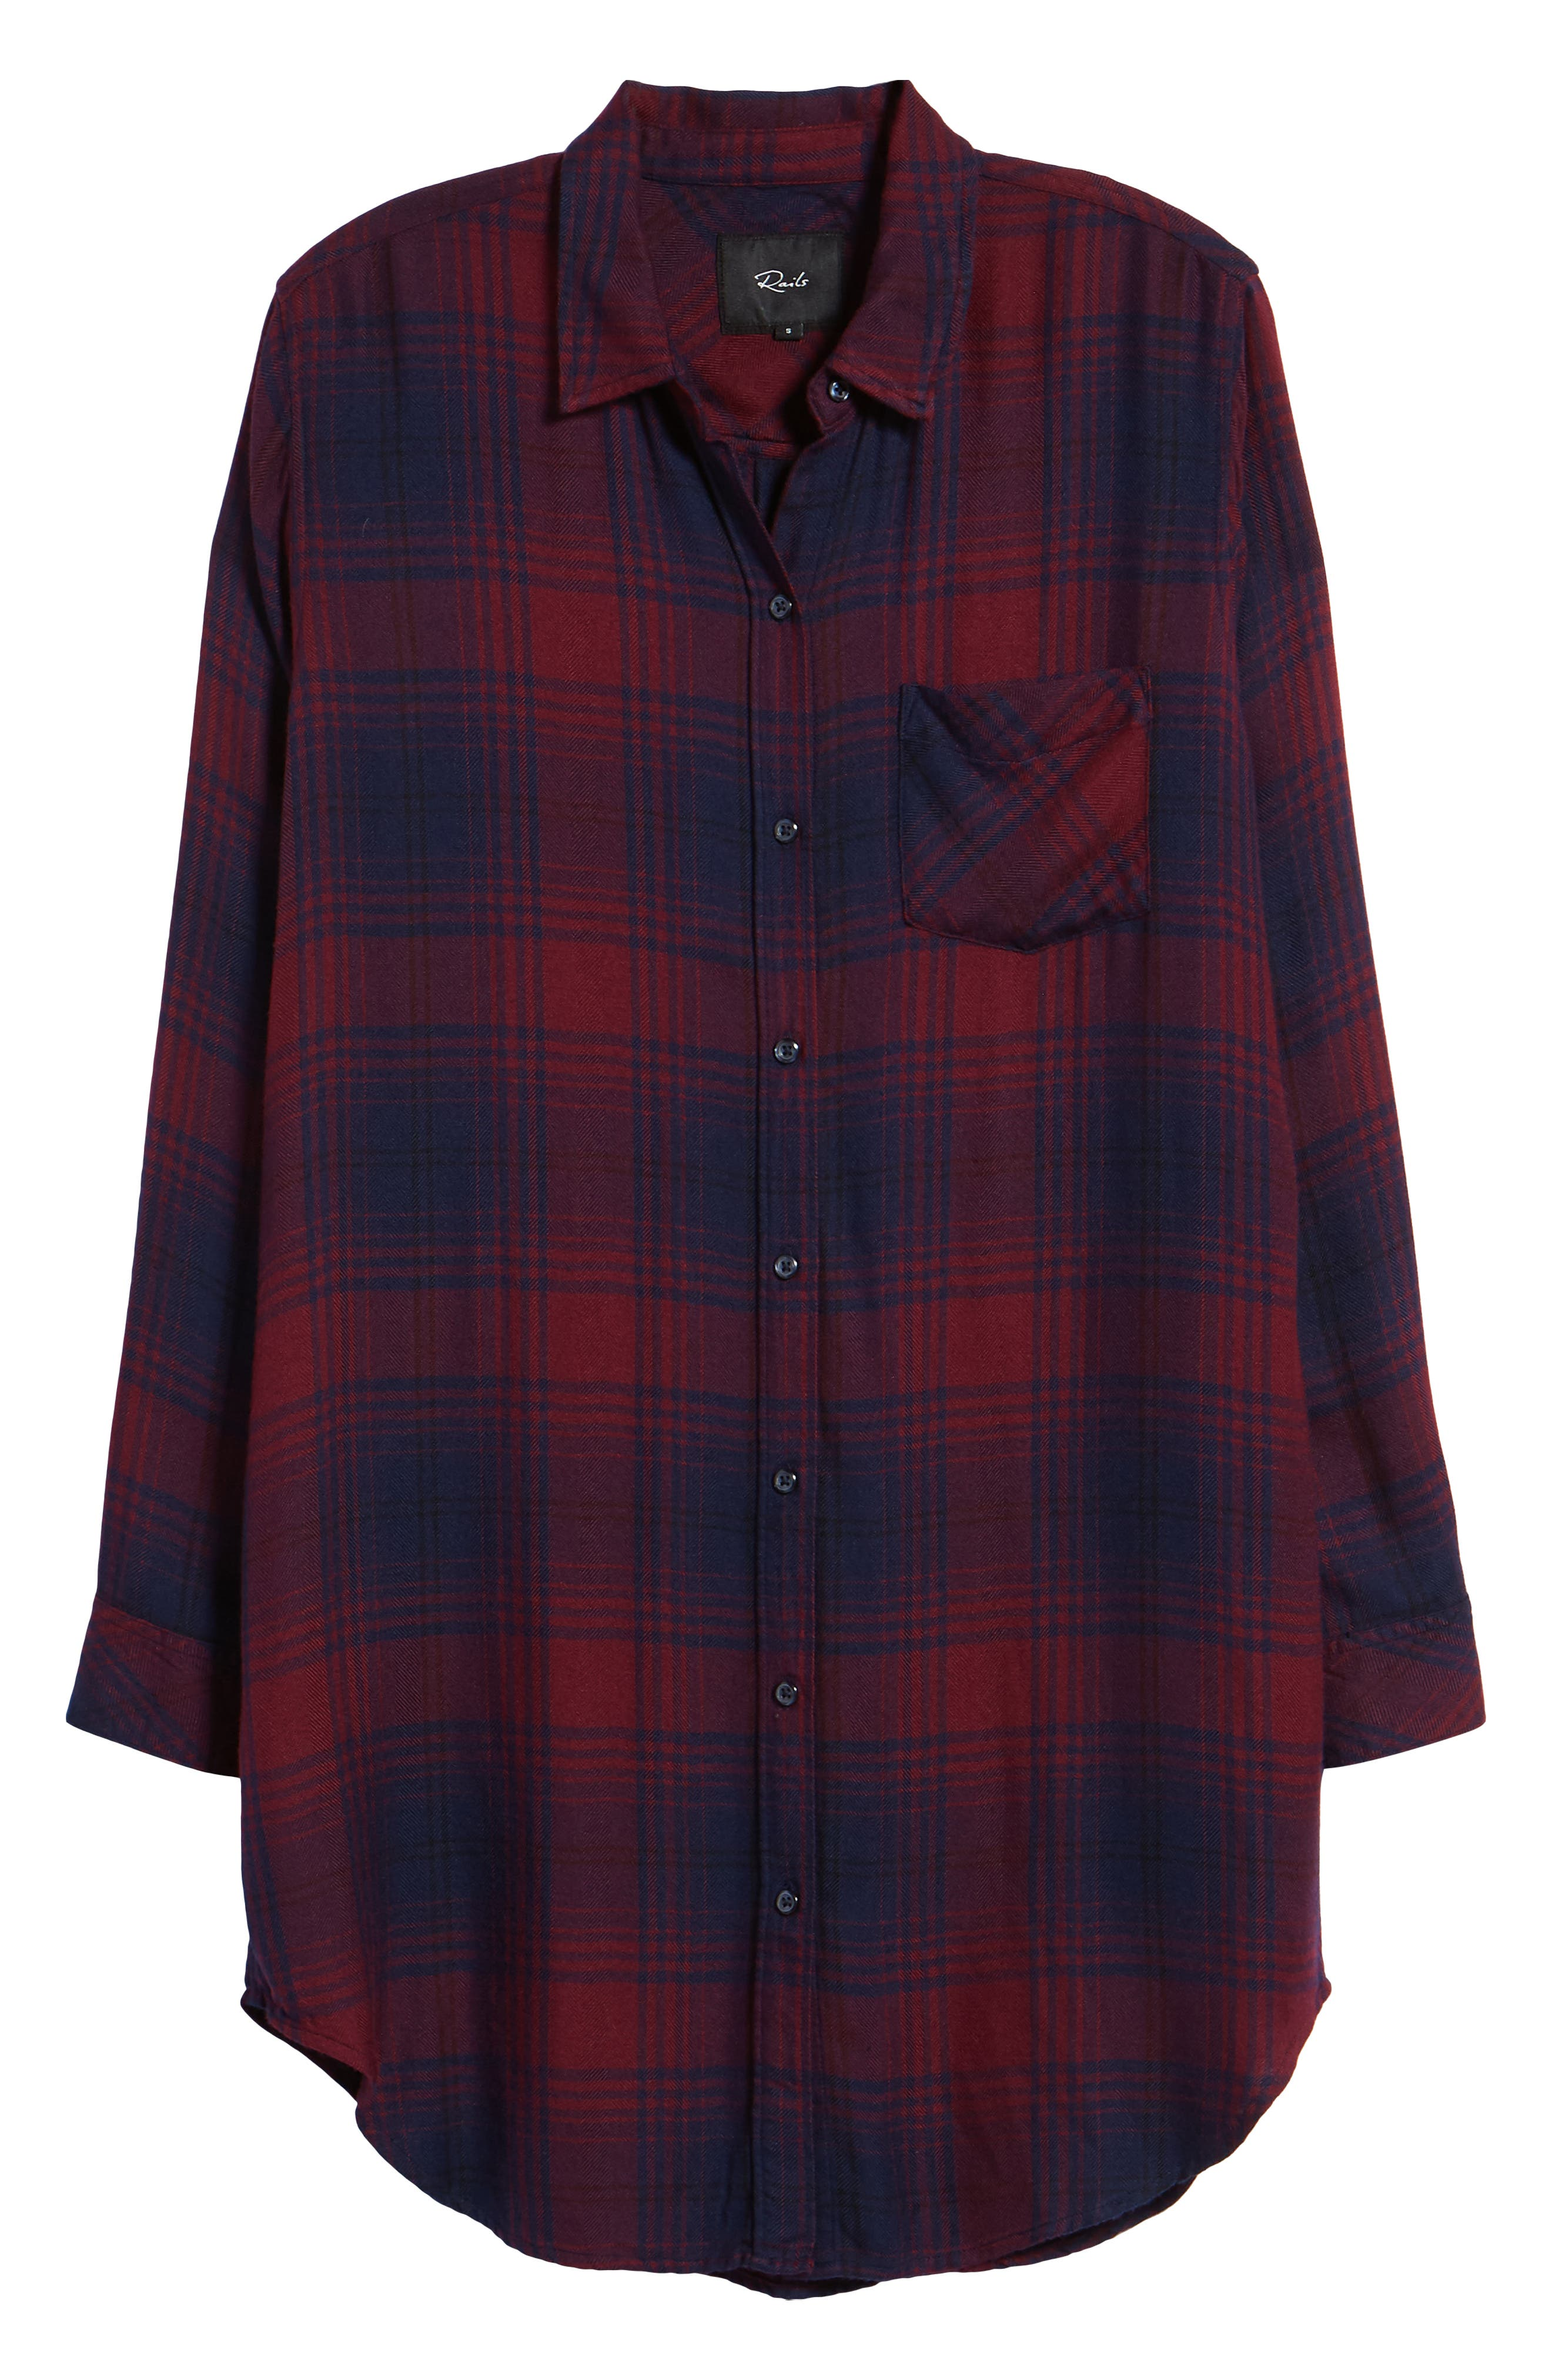 Bianca Flannel Shirtdress,                             Alternate thumbnail 8, color,                             CURRANT NAVY